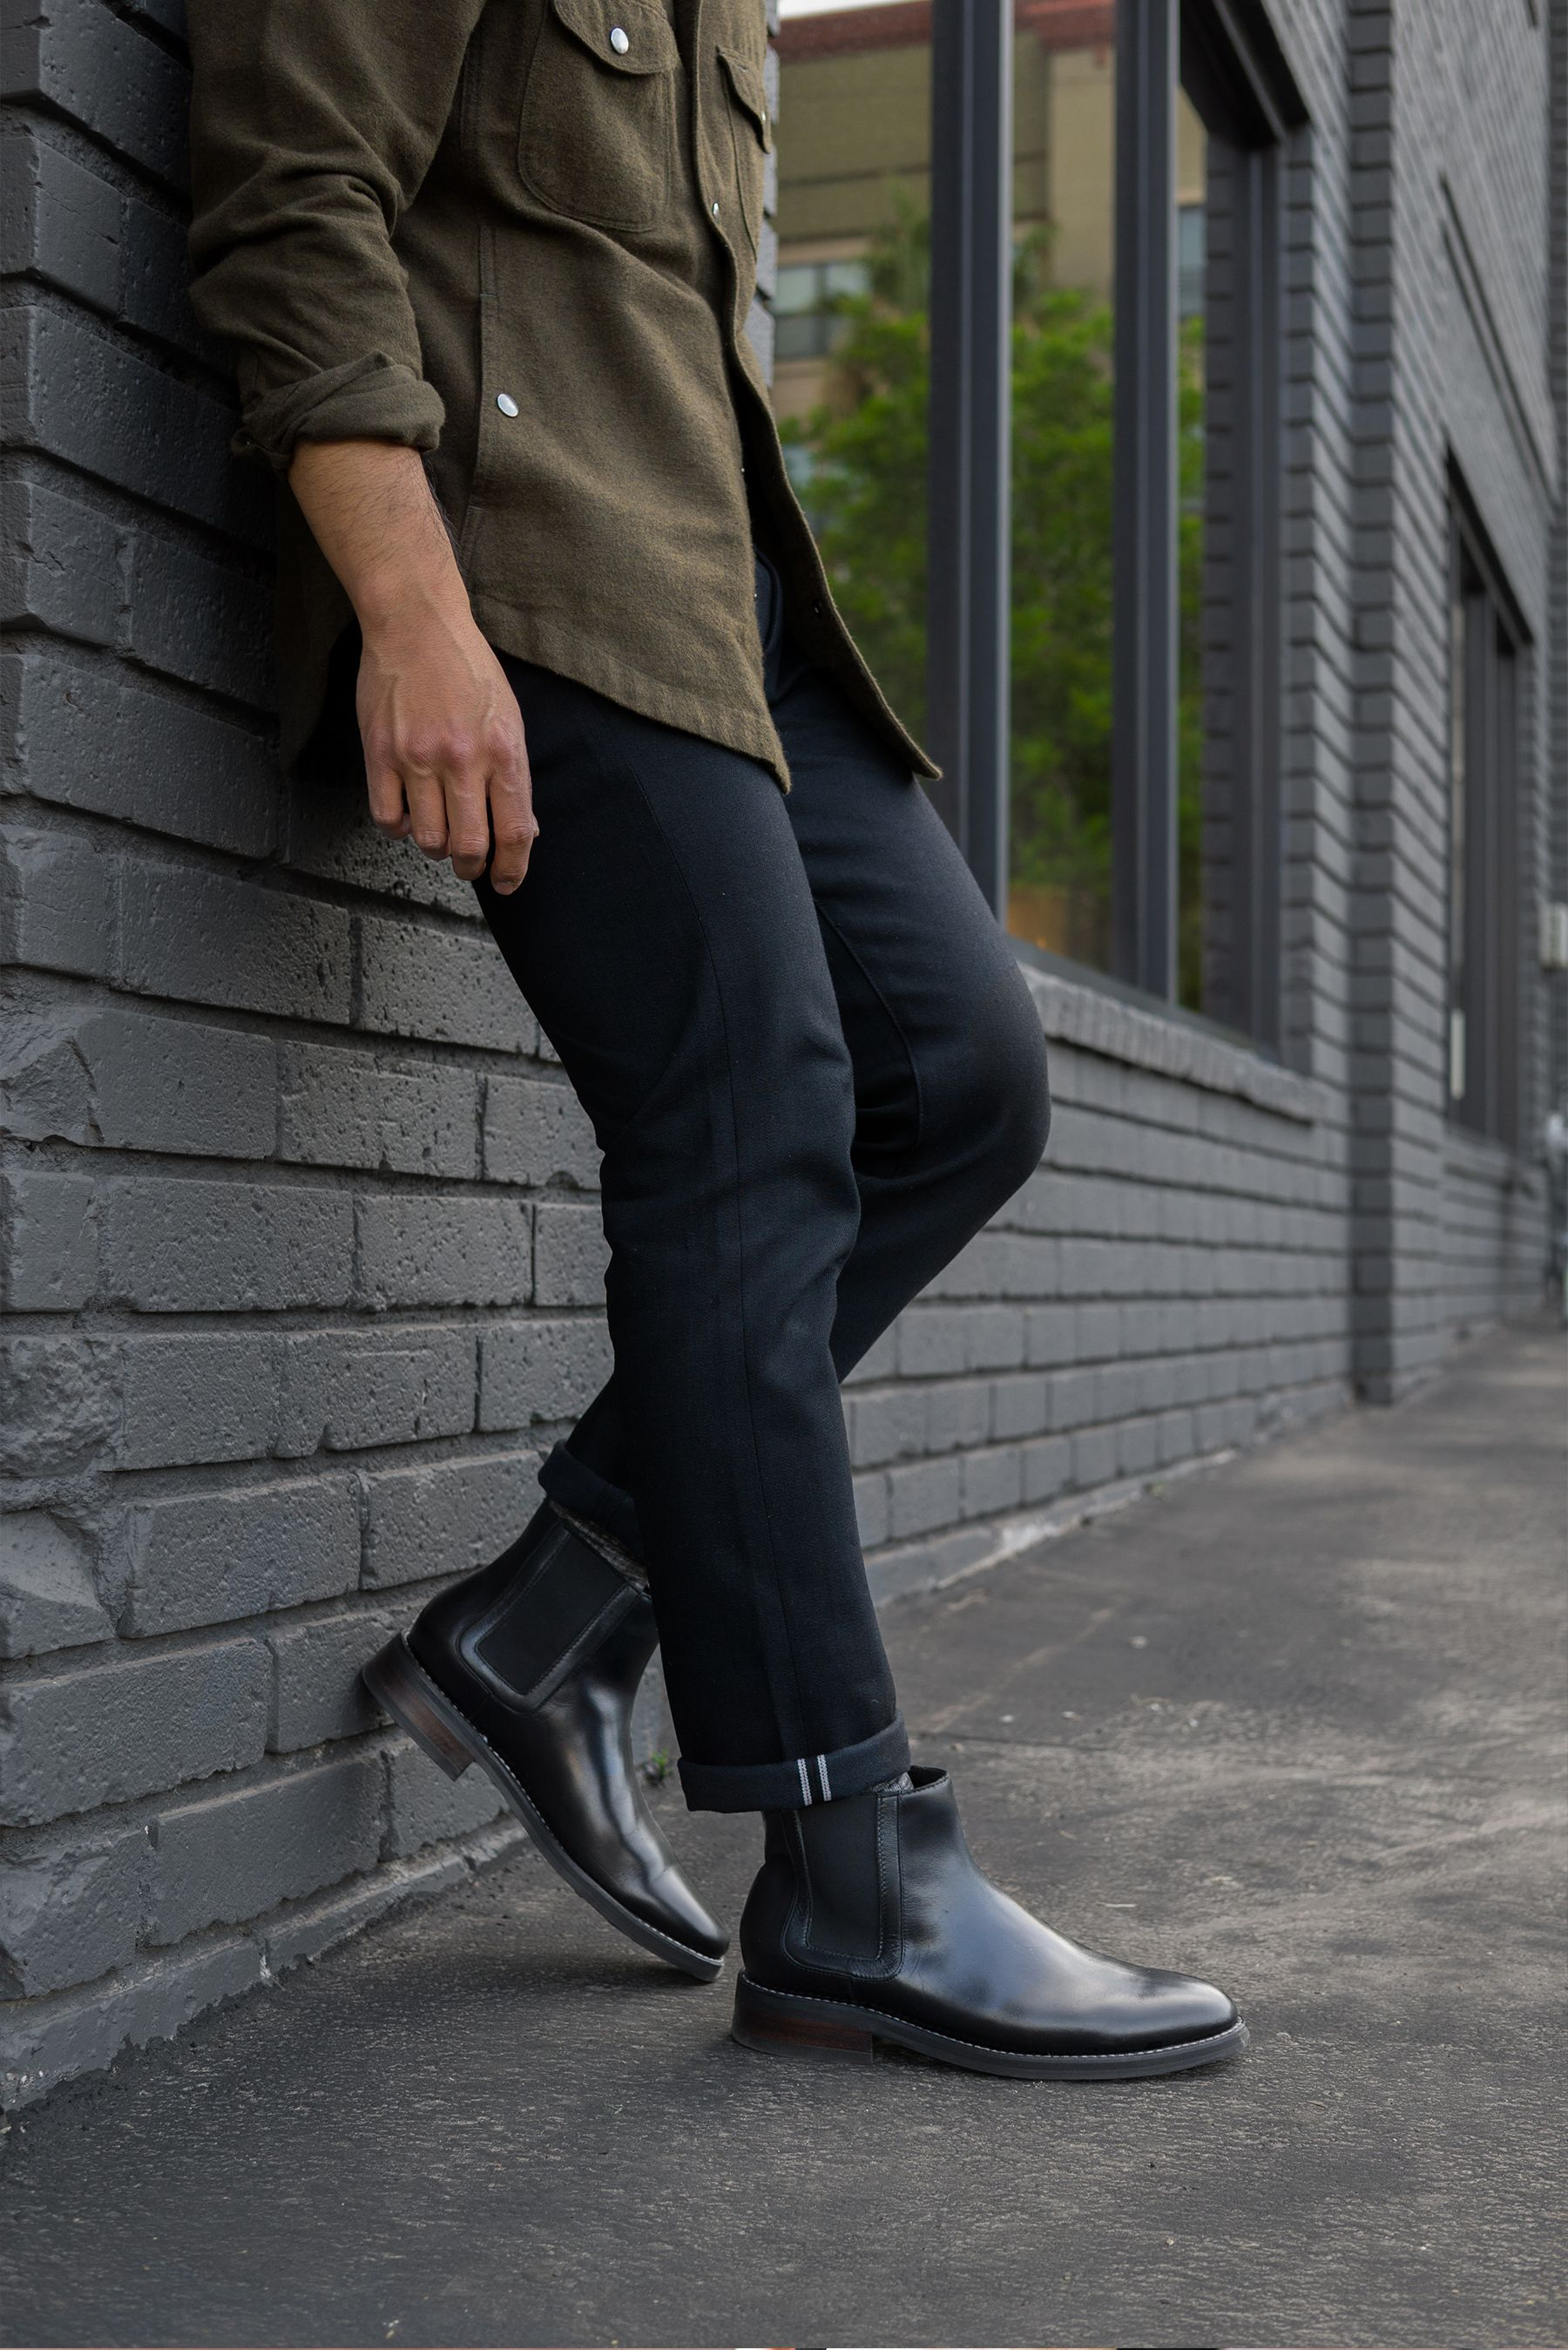 536aba859b Shop the Men's Duke Chelsea Boot at thursdayboots.com. 4,500+ 5-Star  Reviews · Easy & Secure Checkout · Free Shipping & Returns